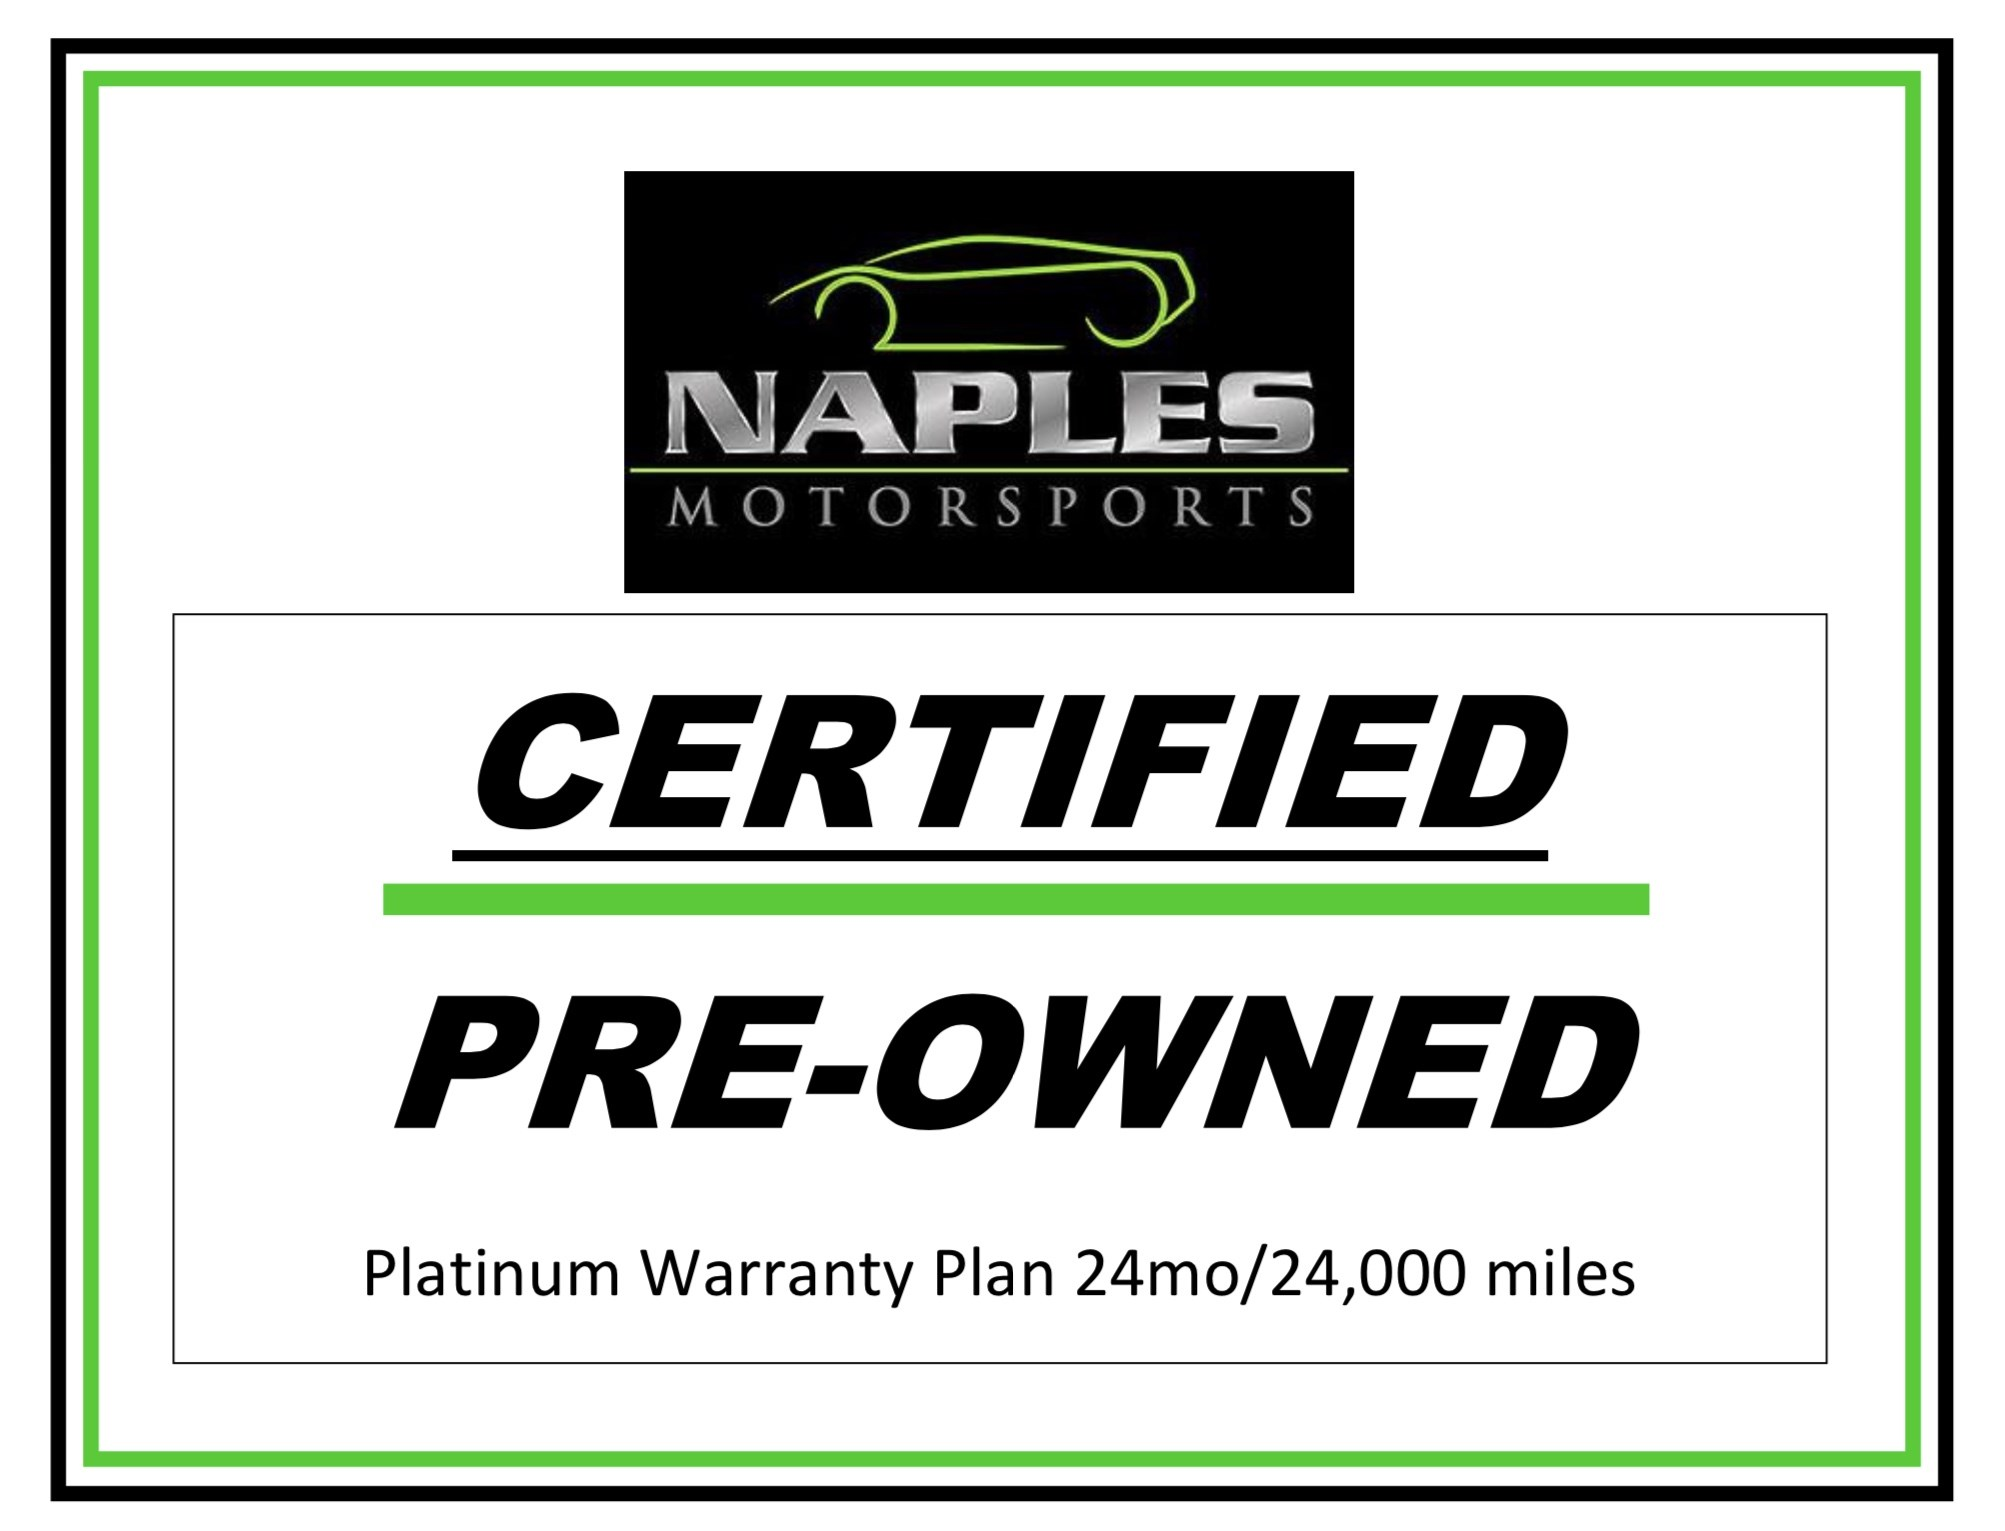 2014 Maserati Quattroporte S Q4: 2014 Maserati Quattroporte S Q4 2 YEAR WARRANTY PRE-OWNED CERTIFIED